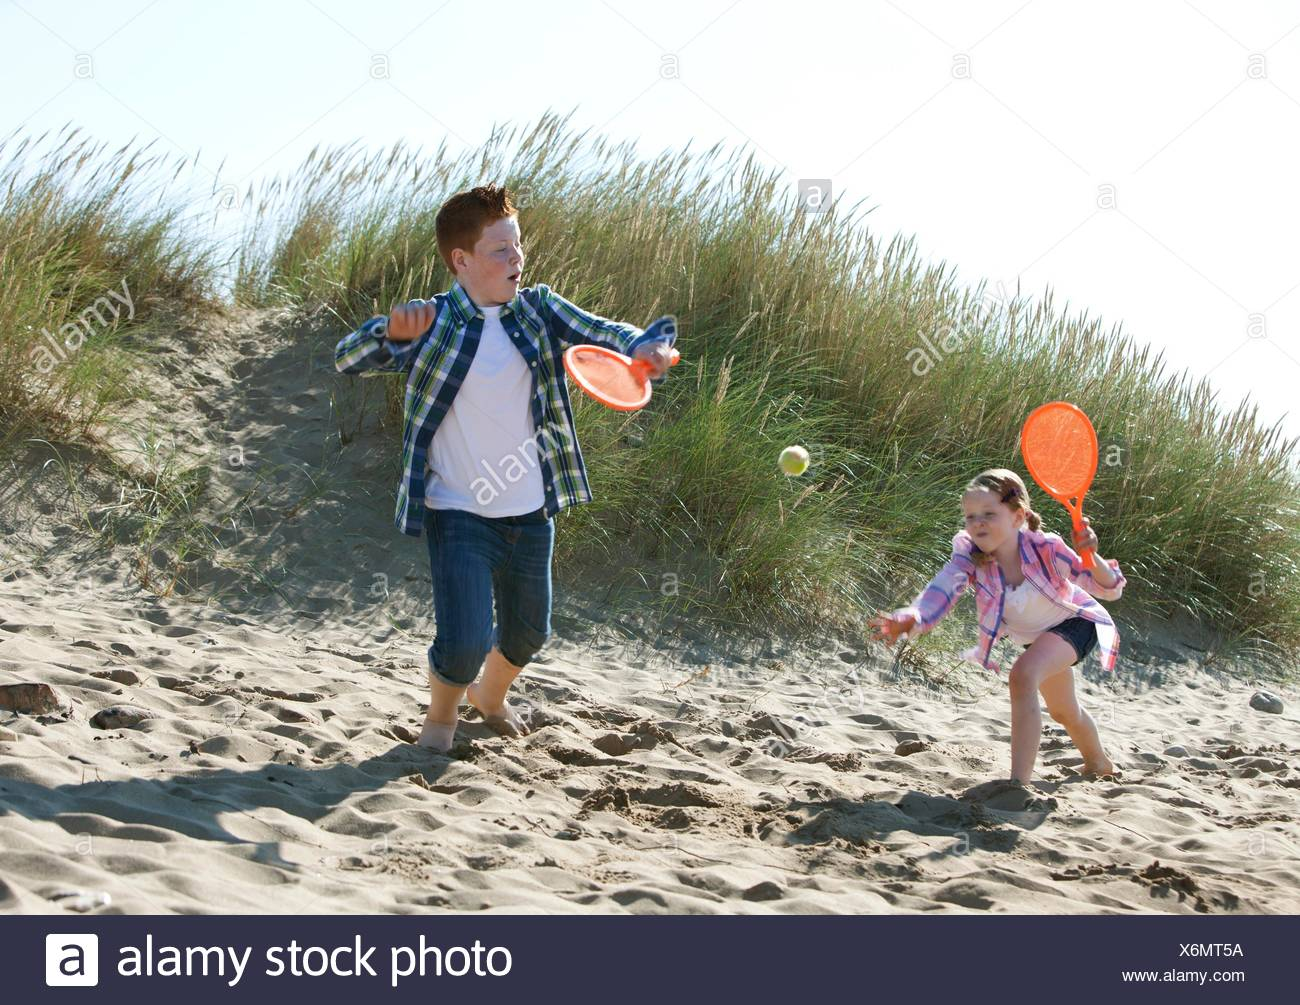 Girl and boy playing with orange sports bat and tennis ball on dunes - Stock Image